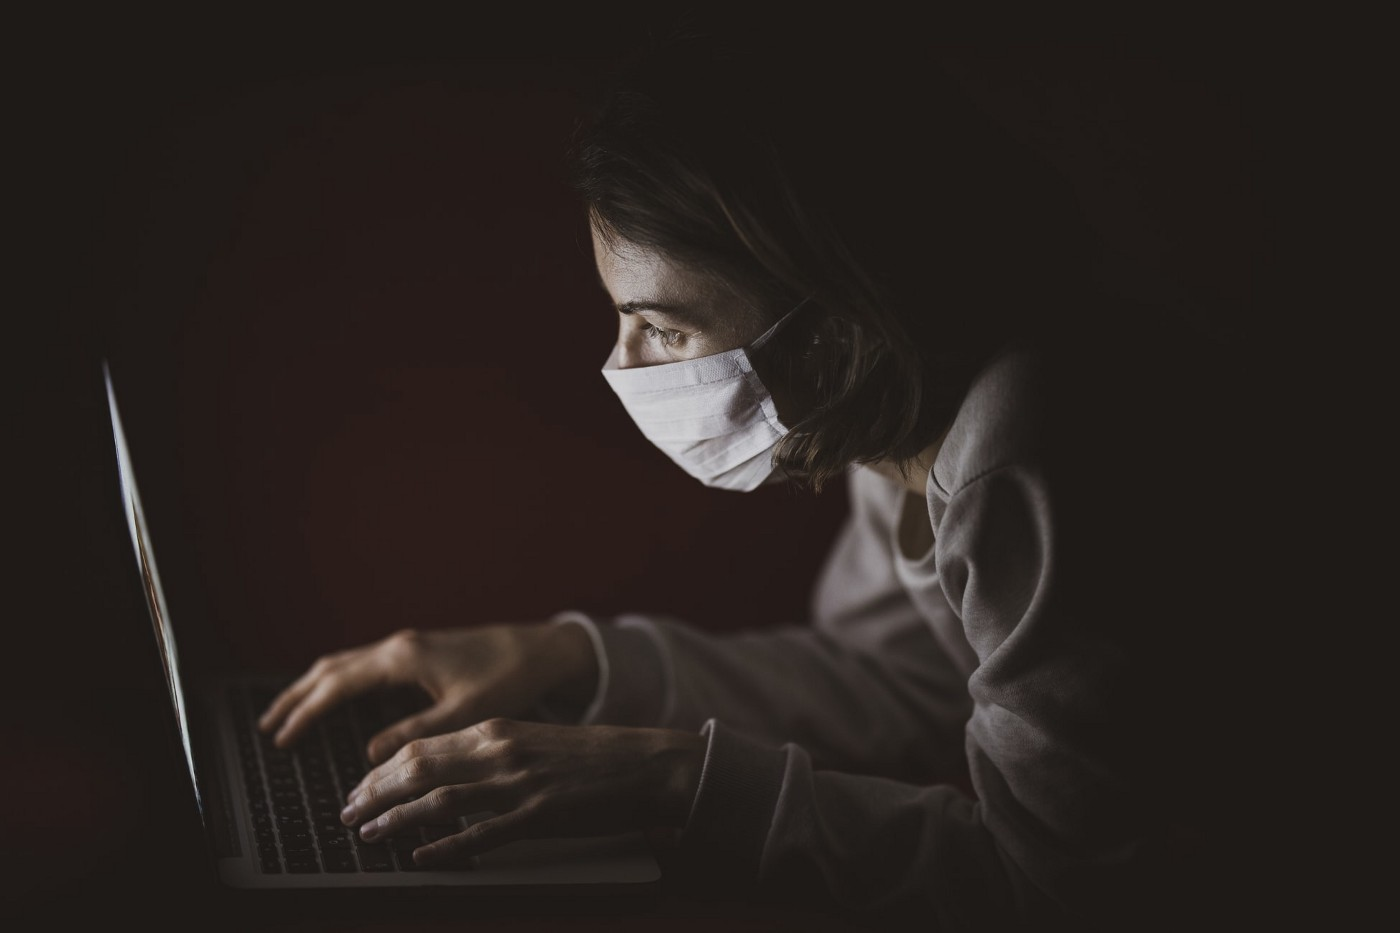 A woman in a mask types on a laptop.